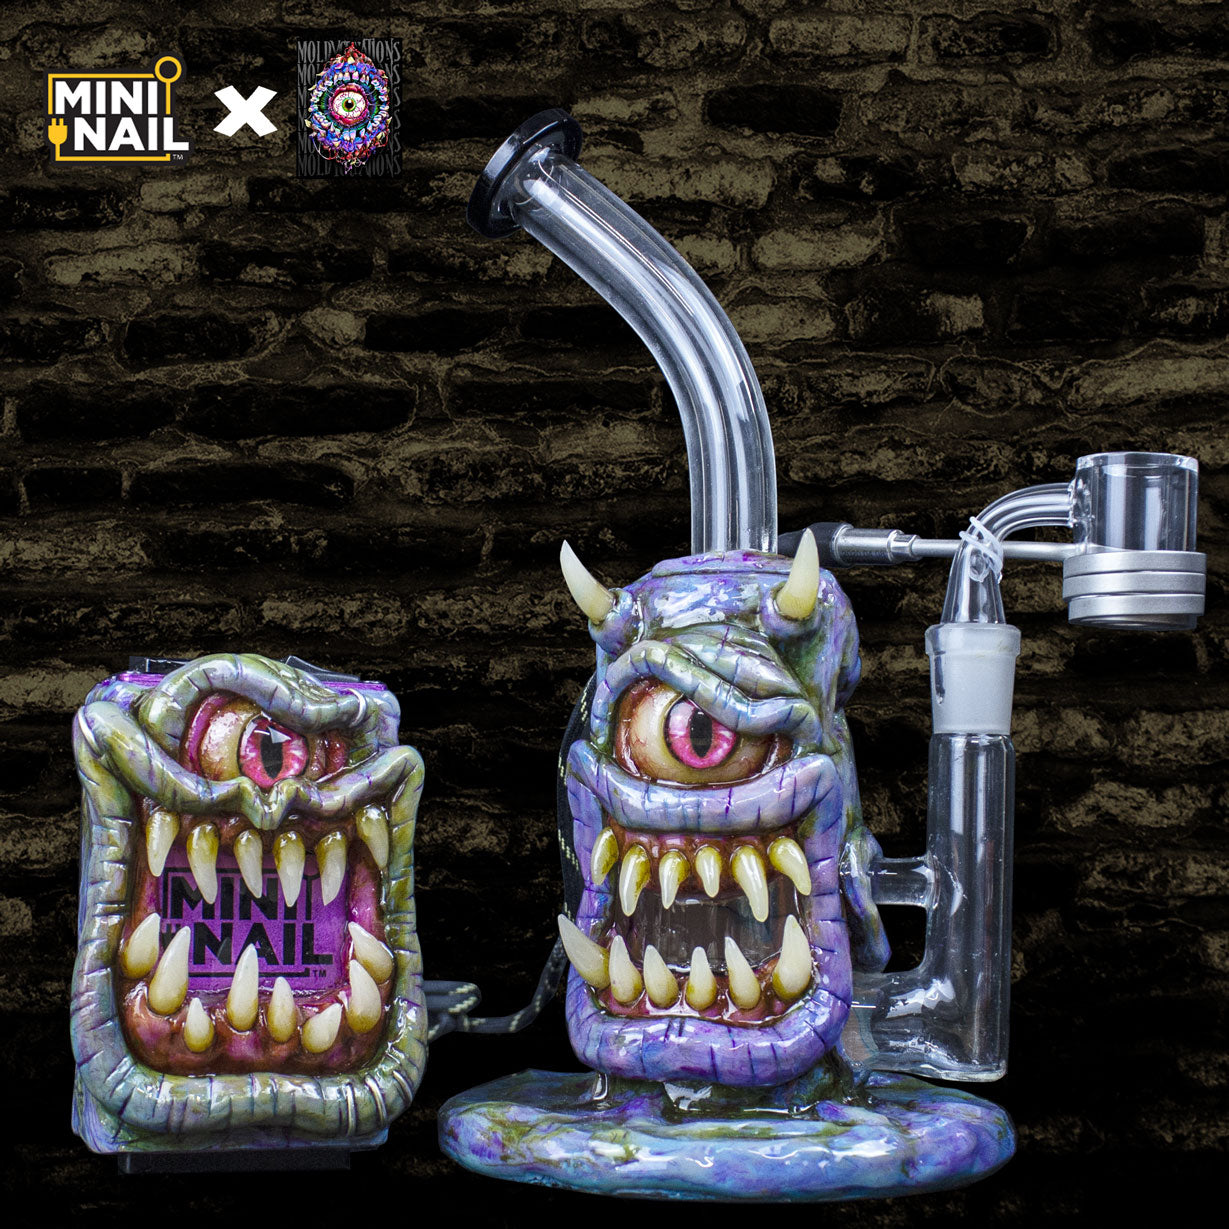 MiniNail x Moldy.Creations Custom E-Nail Set #MC19